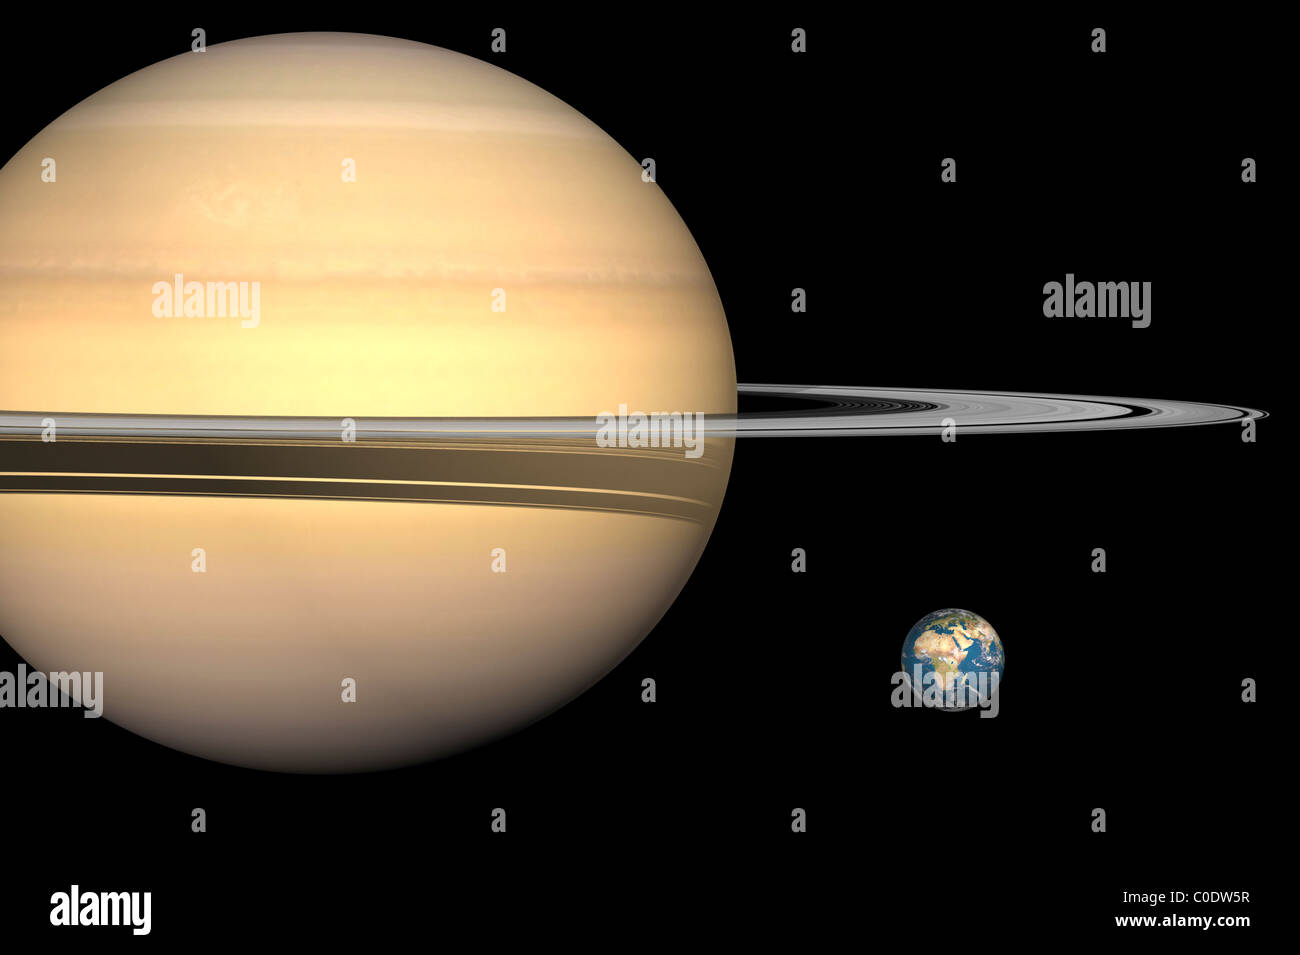 Illustration de Saturne et de la Terre à l'échelle. Photo Stock